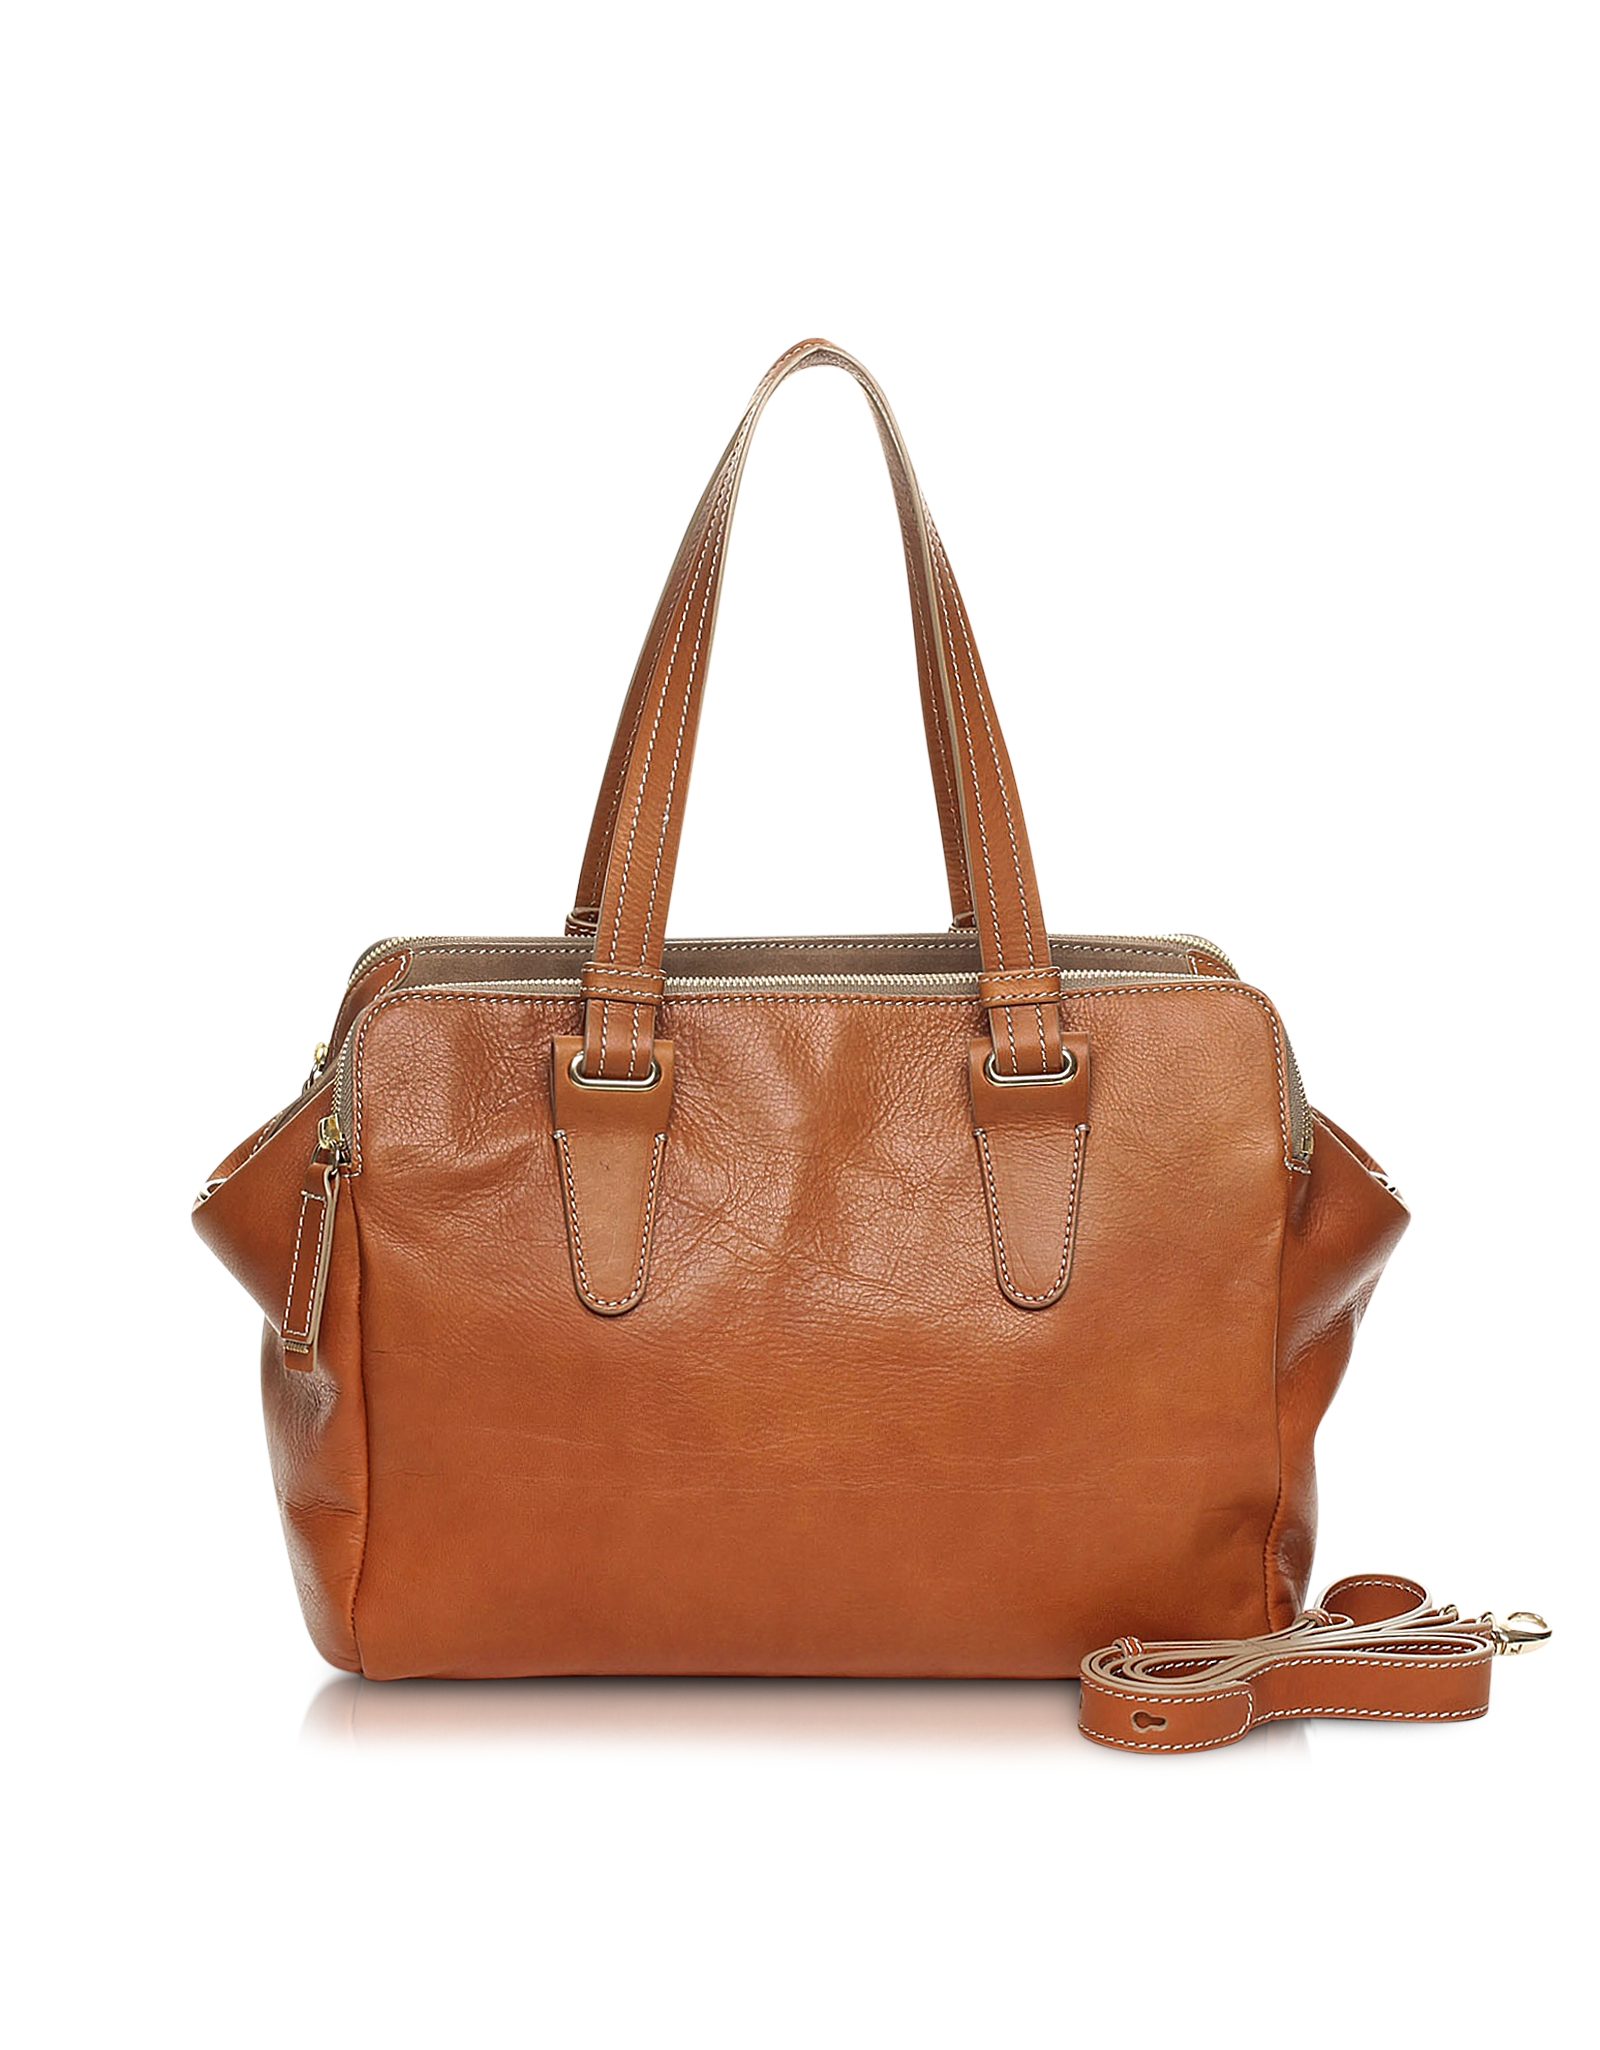 Lyst Francesco Biasia Queensbury Large Tote Bag In Brown fdf91d50716a6